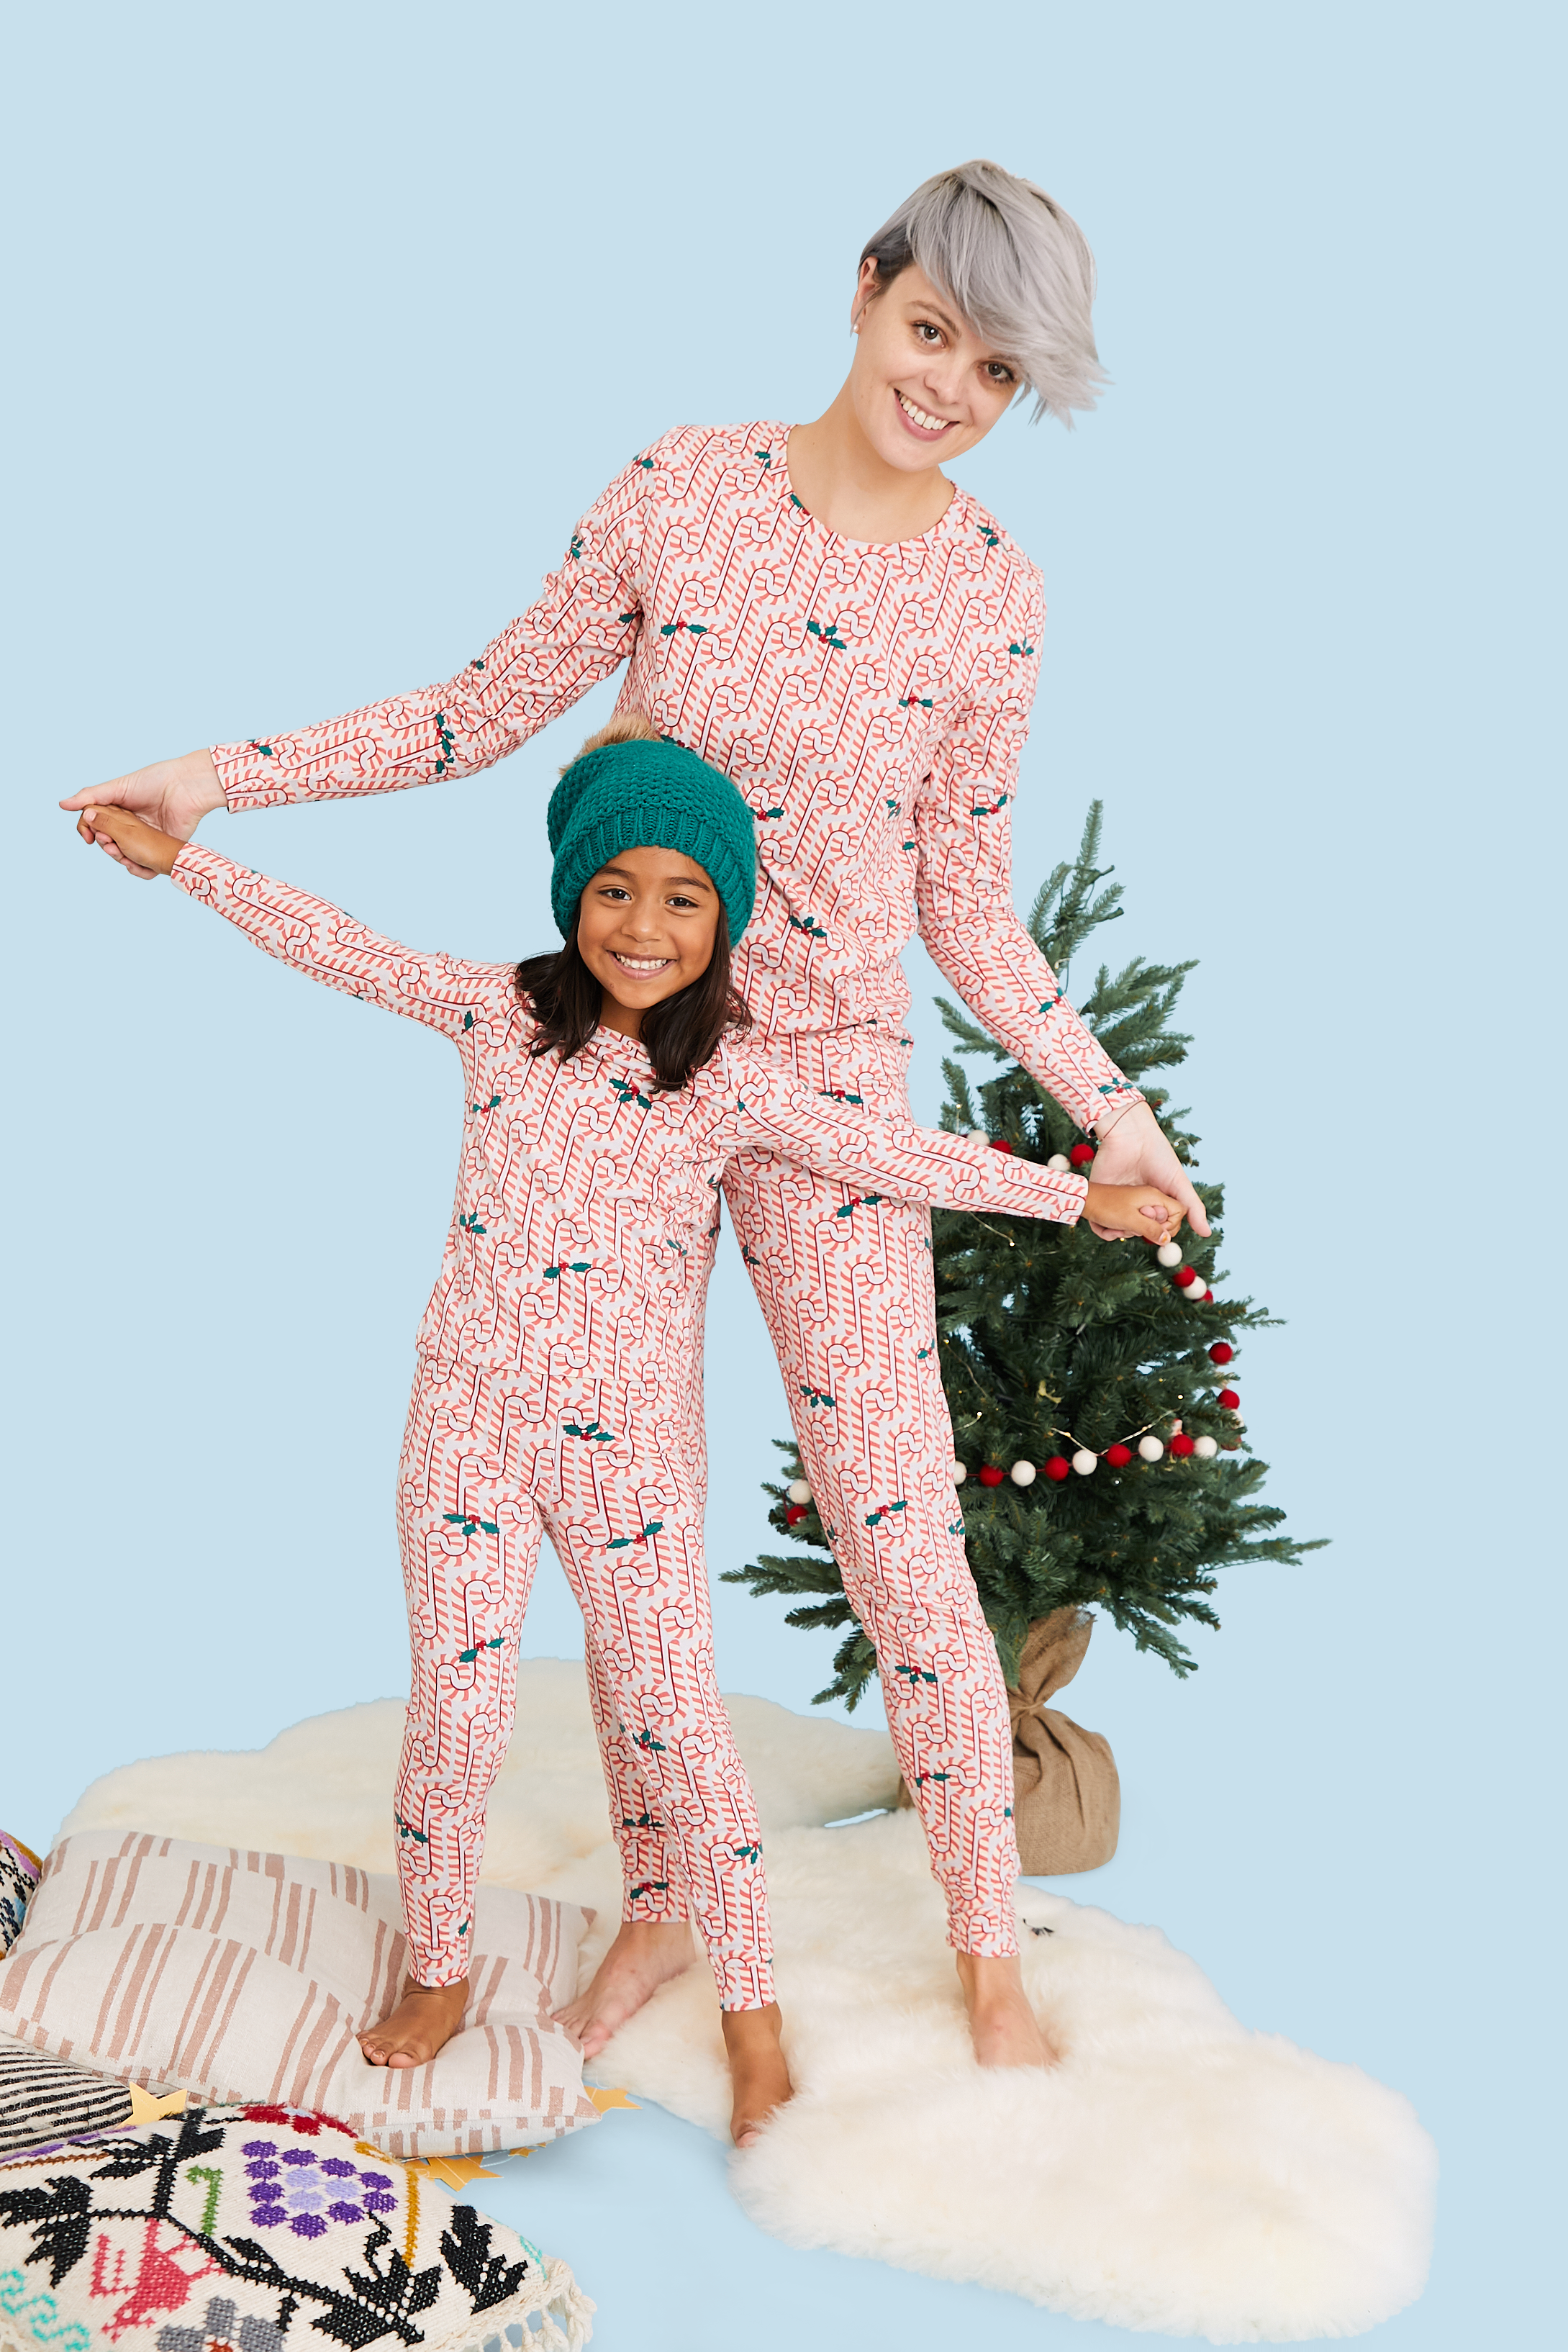 View larger version of Pink Chicken Women's Holiday PJ Set xs light gray candy canes - 19hpcw363c